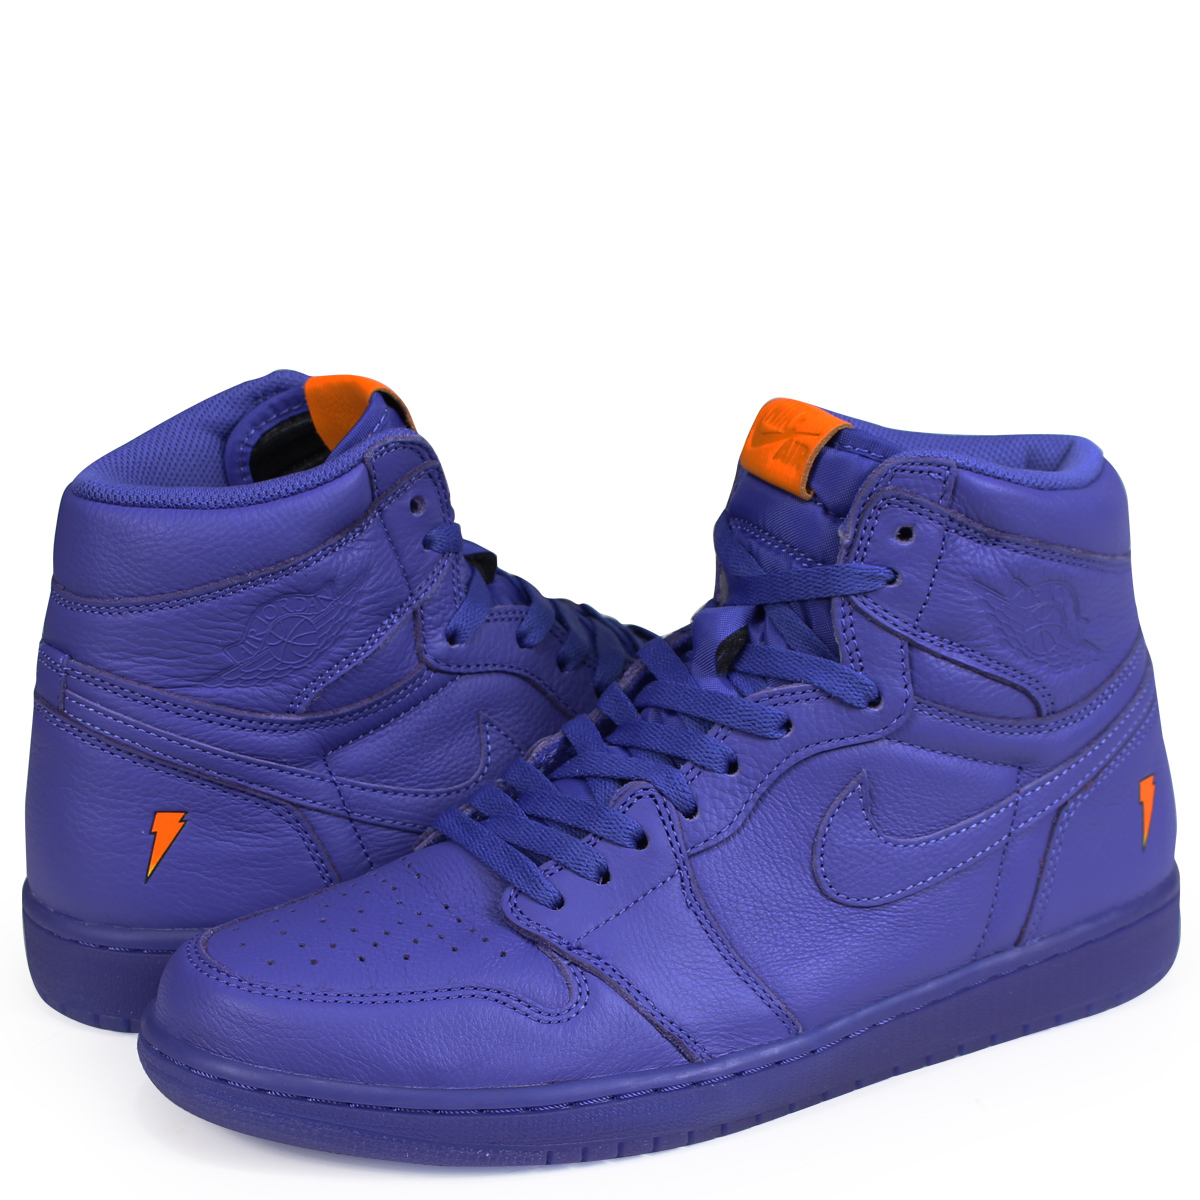 buy popular 91b97 71f36 Nike NIKE Air Jordan 1 nostalgic high sneakers men AIR JORDAN 1 RETRO HIGH  OG G8RD BE LIKE MIKE GRAPE AJ5997-555 blue  193